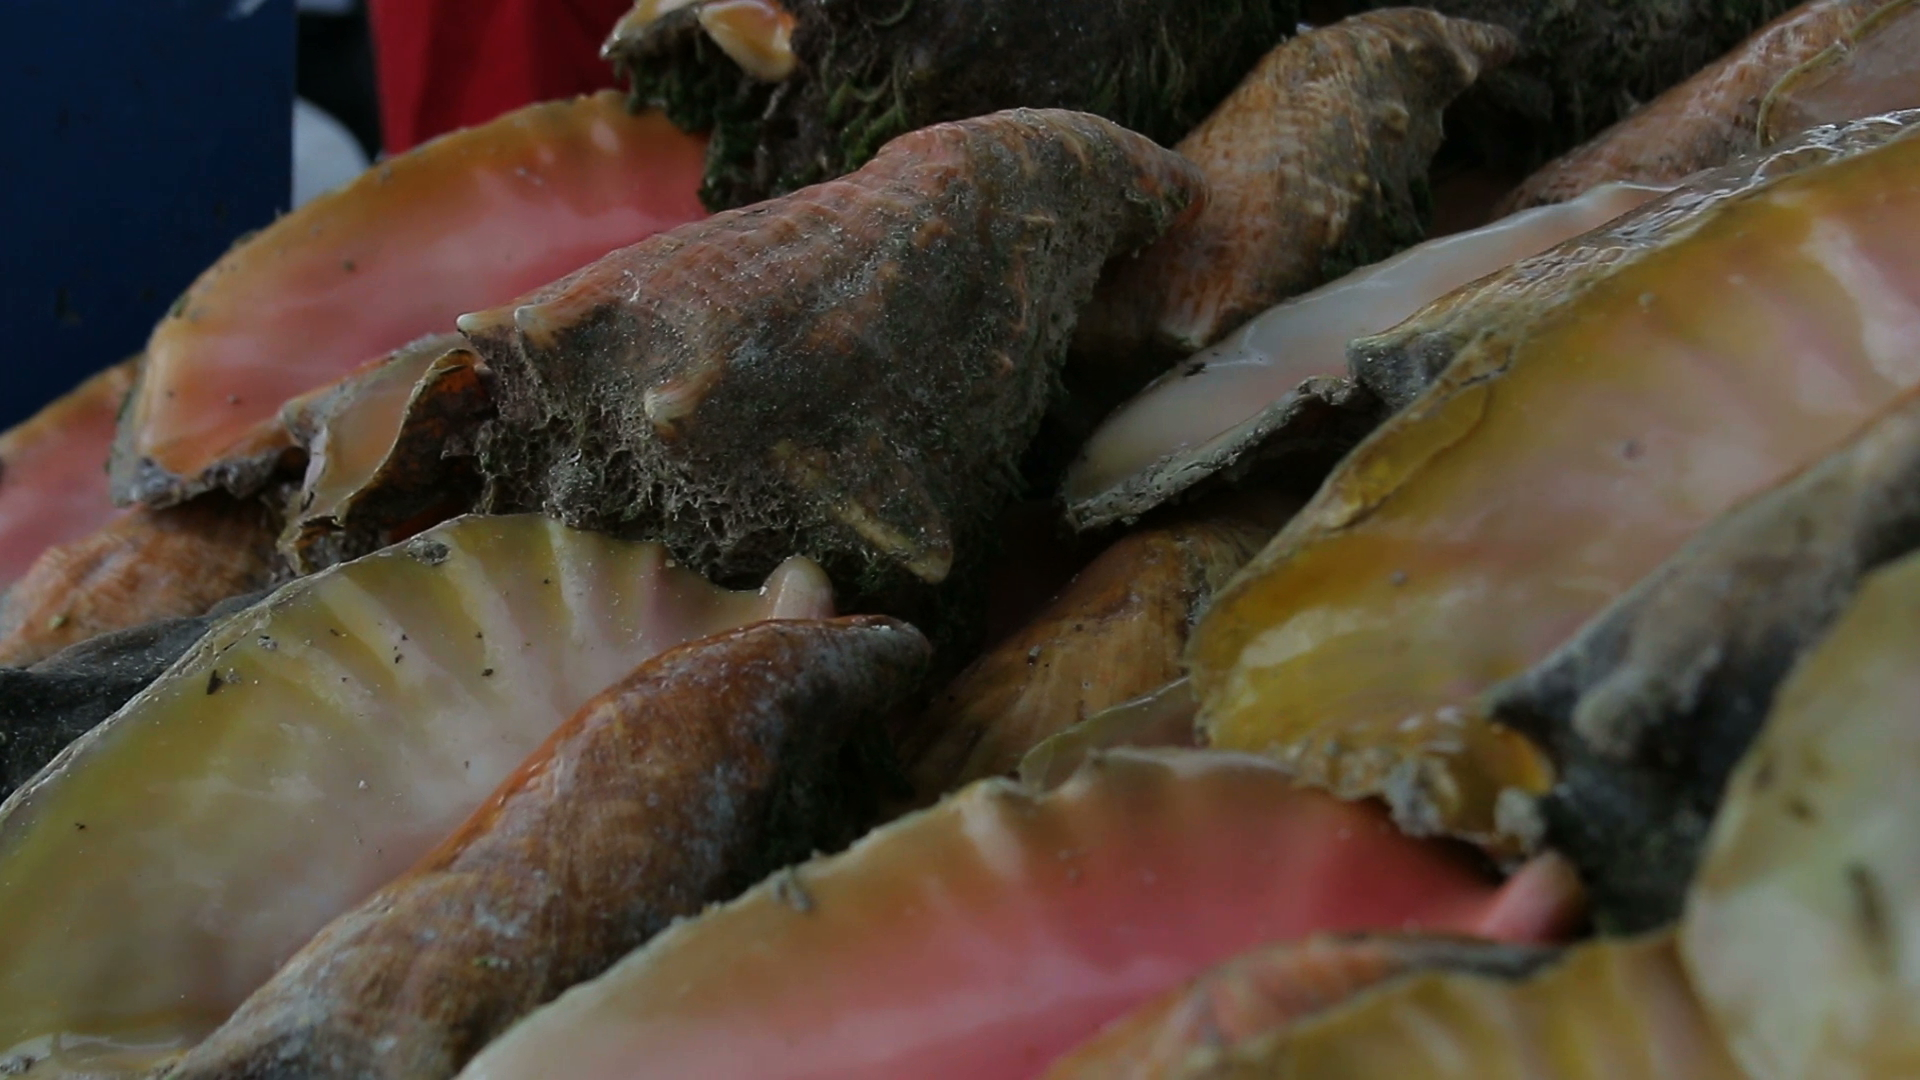 Conch poisoning cases increase